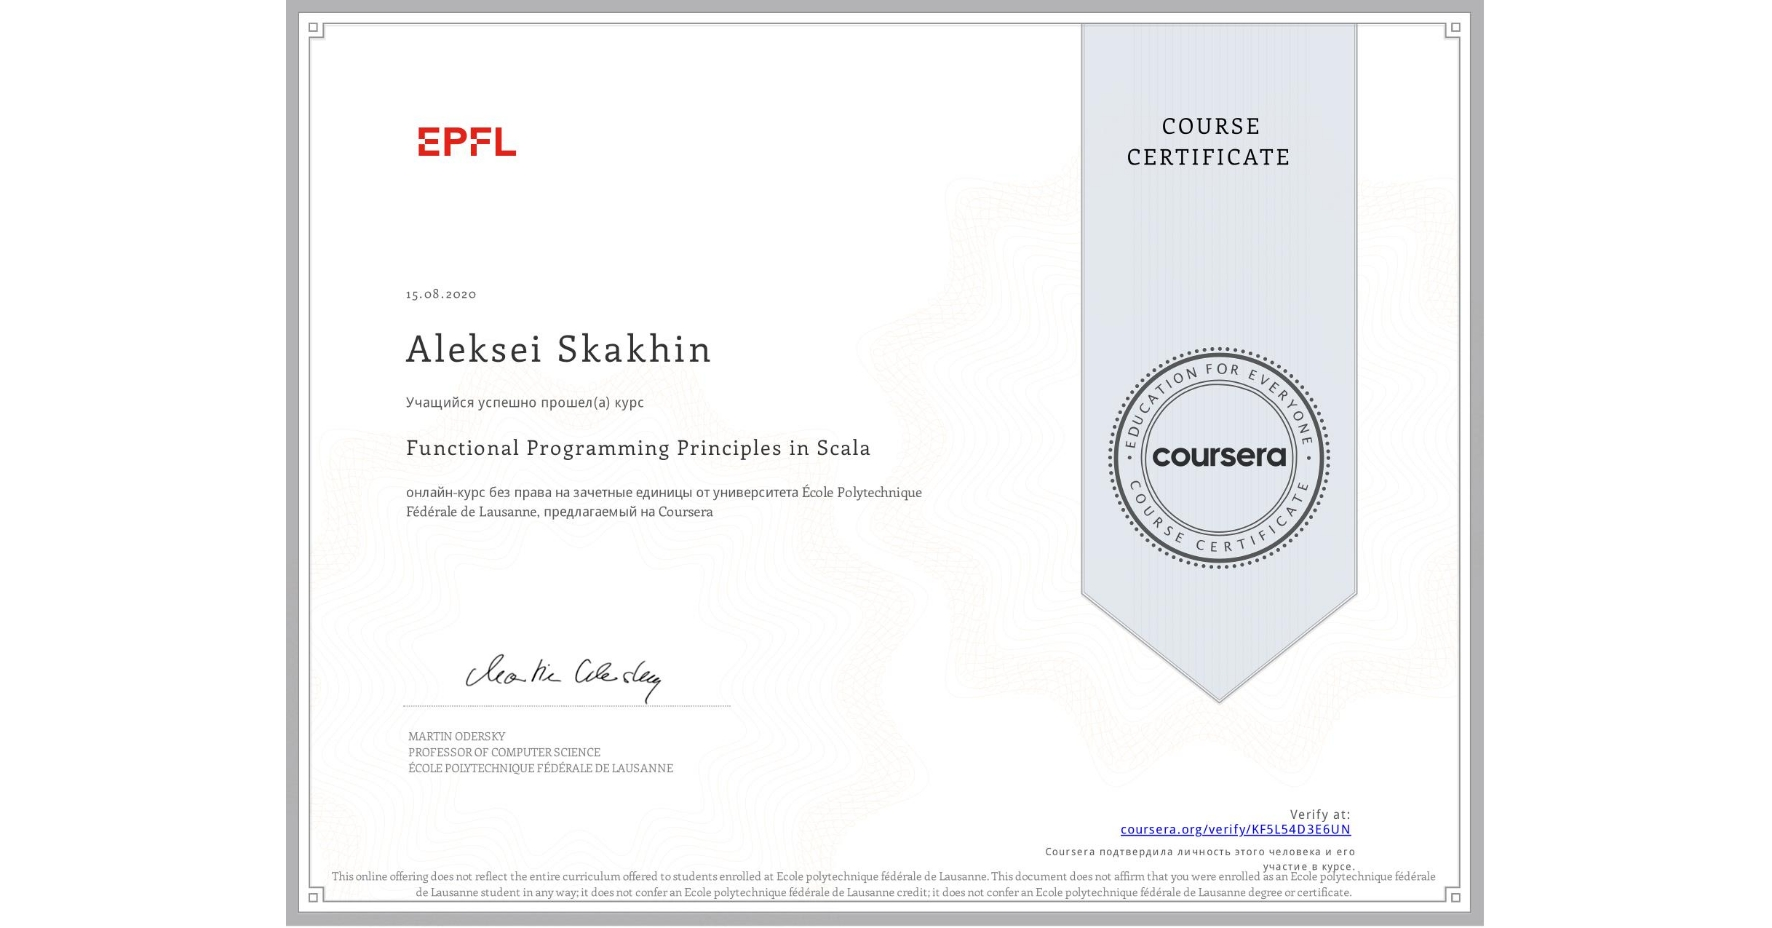 View certificate for Aleksei Skakhin, Functional Programming Principles in Scala, an online non-credit course authorized by École Polytechnique Fédérale de Lausanne and offered through Coursera